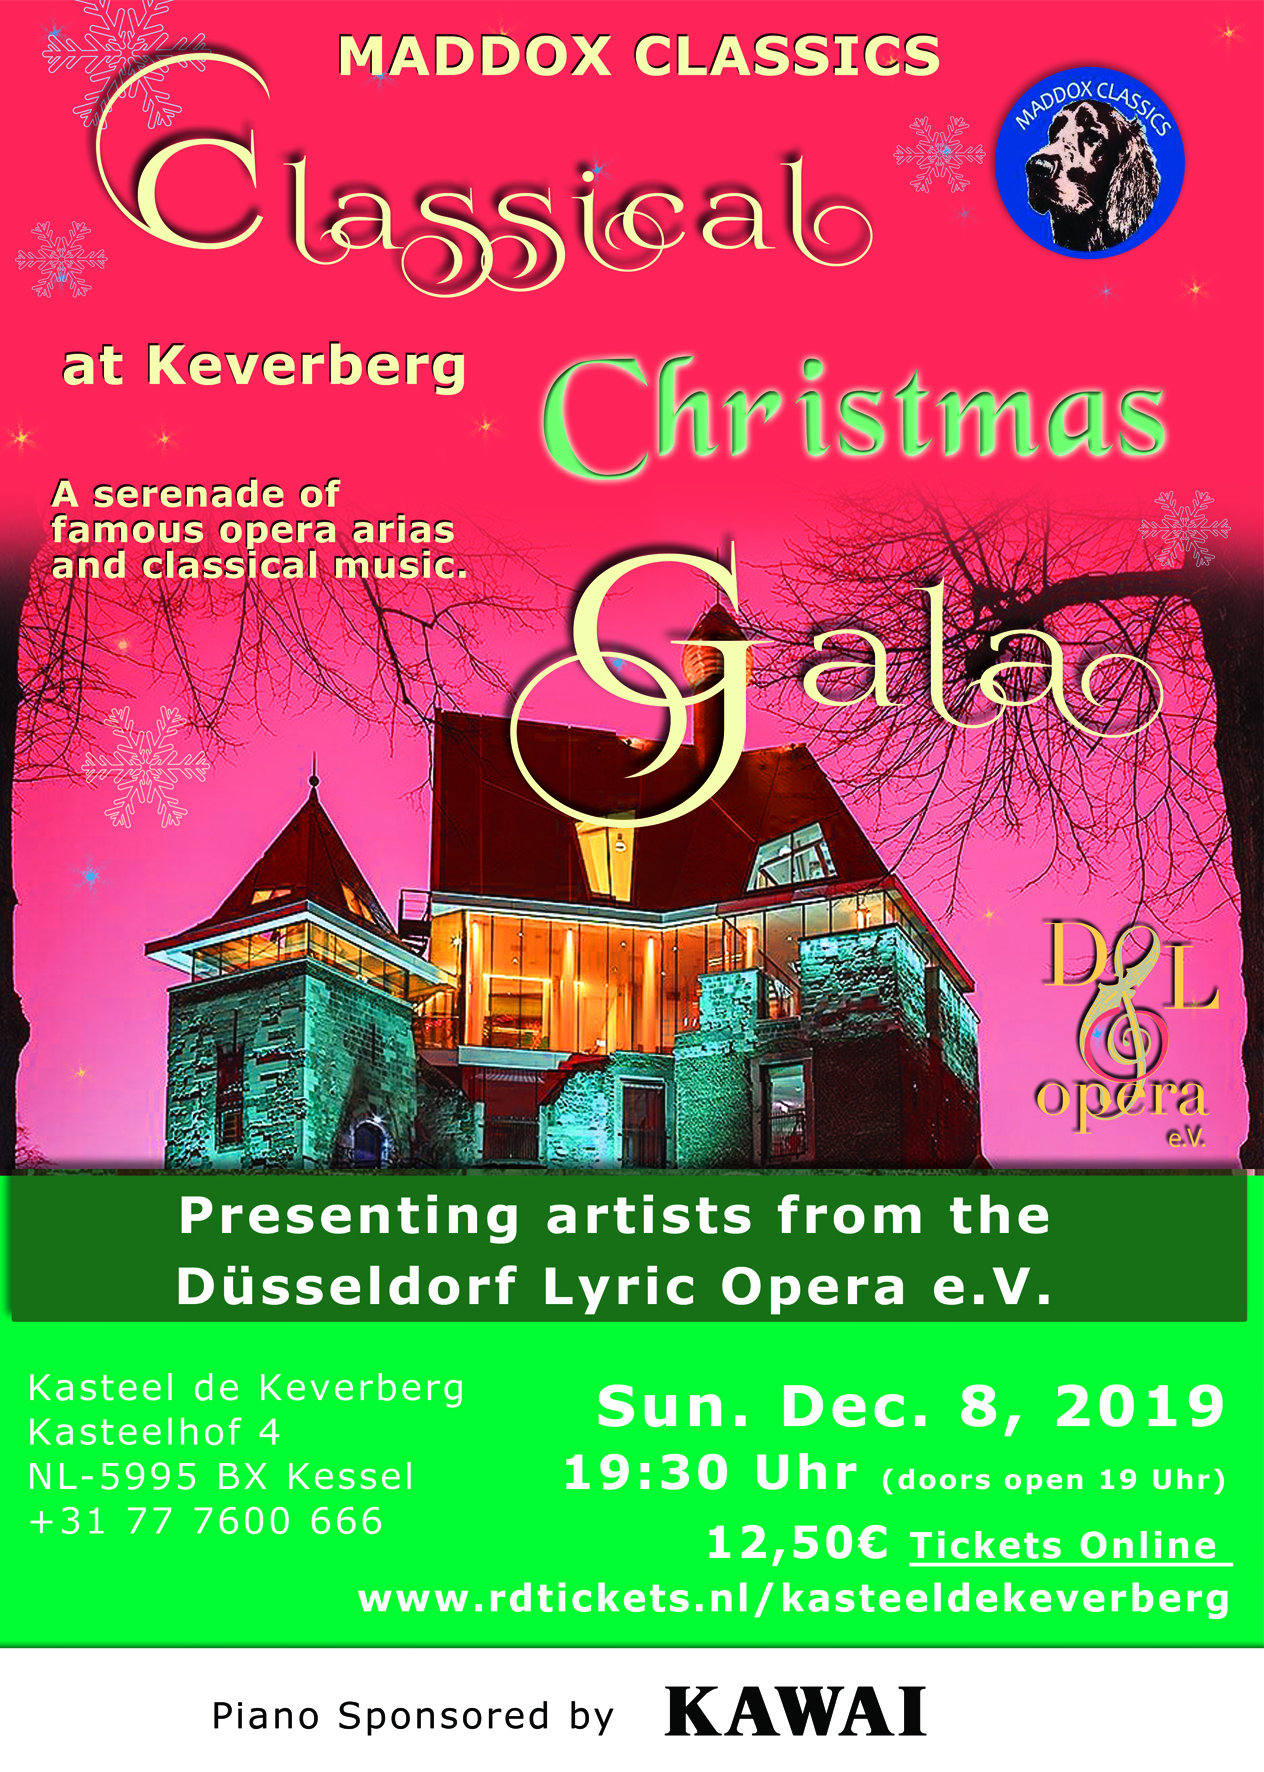 A6 Classical Christmas Concert at Keverberg (003)